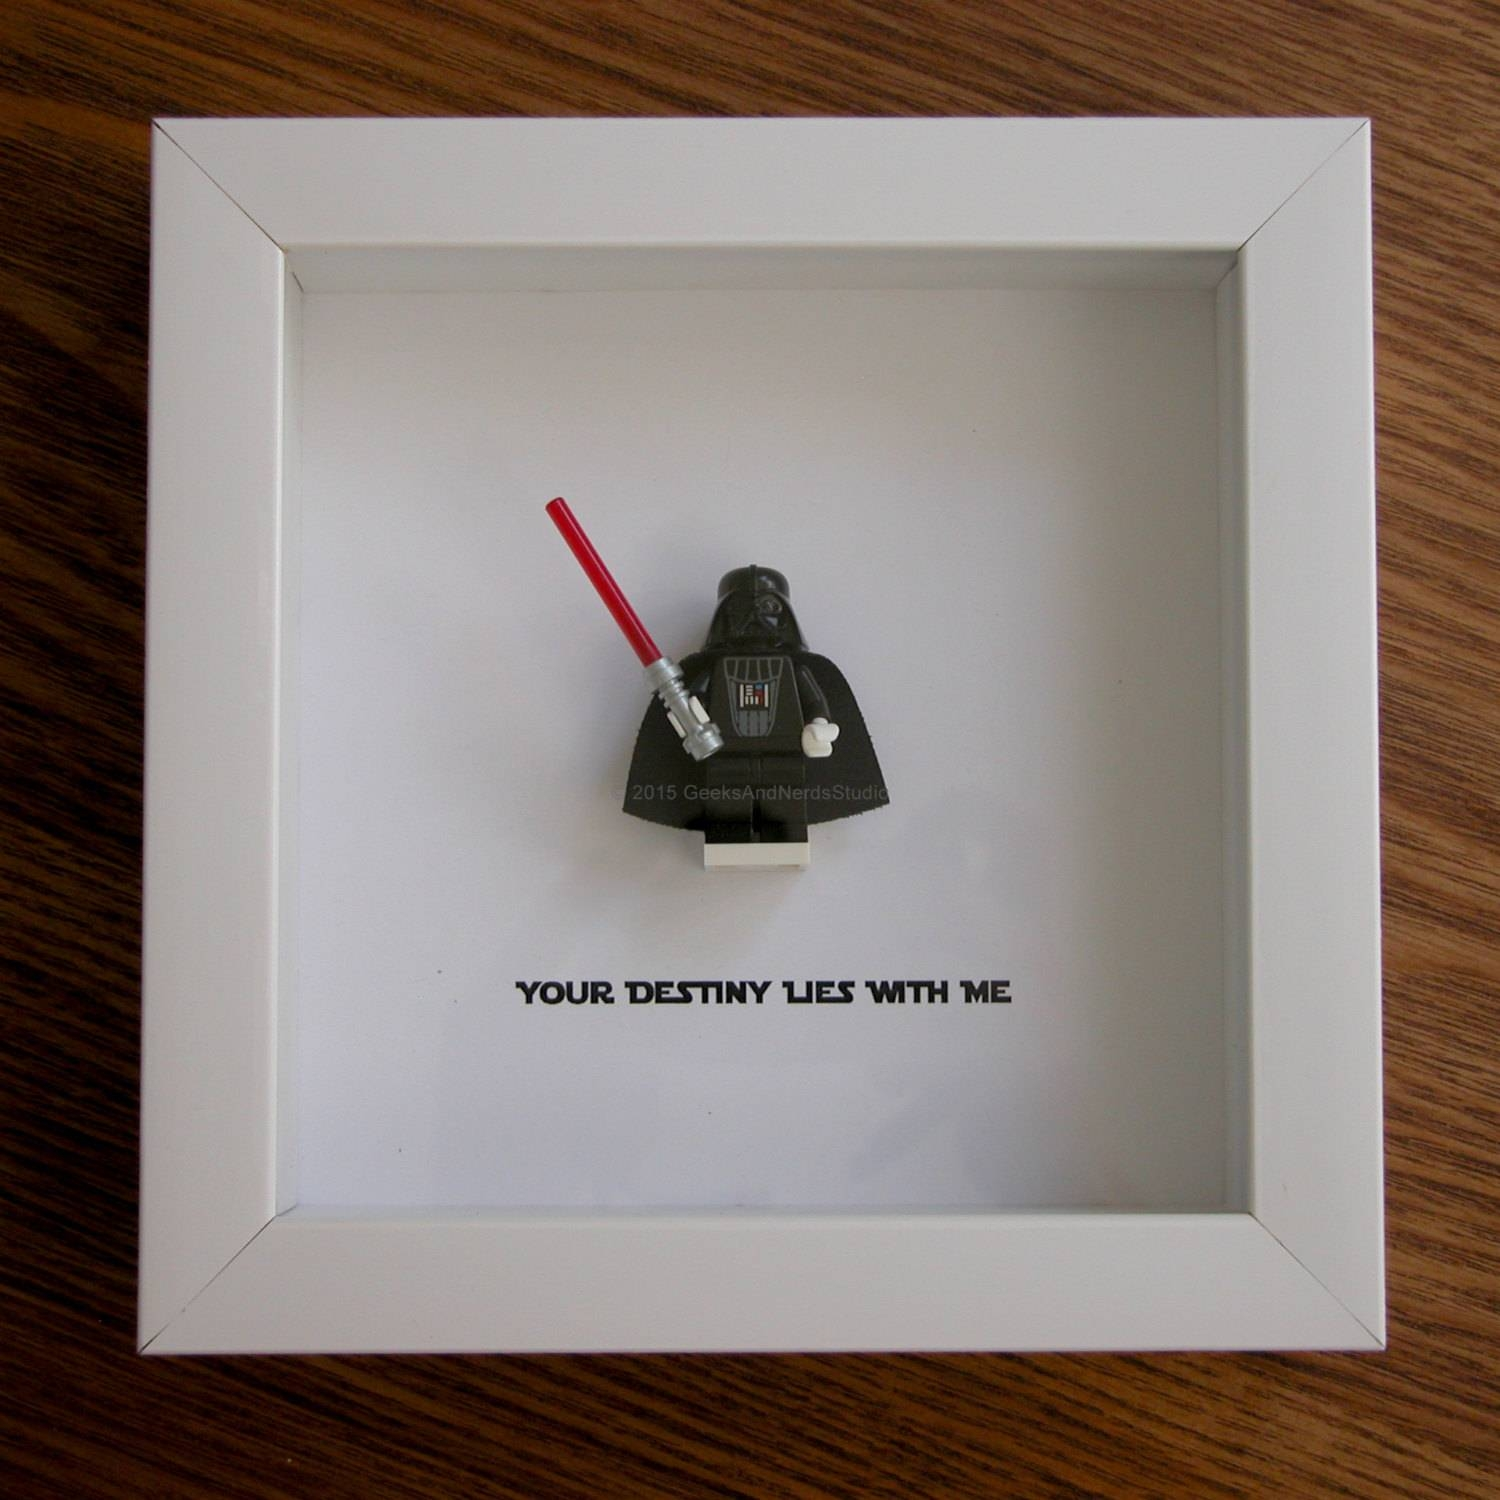 Lego Star Wars Art Frame Darth Vader Lego Christmas Lego Throughout Most Current Lego Star Wars Wall Art (View 6 of 20)